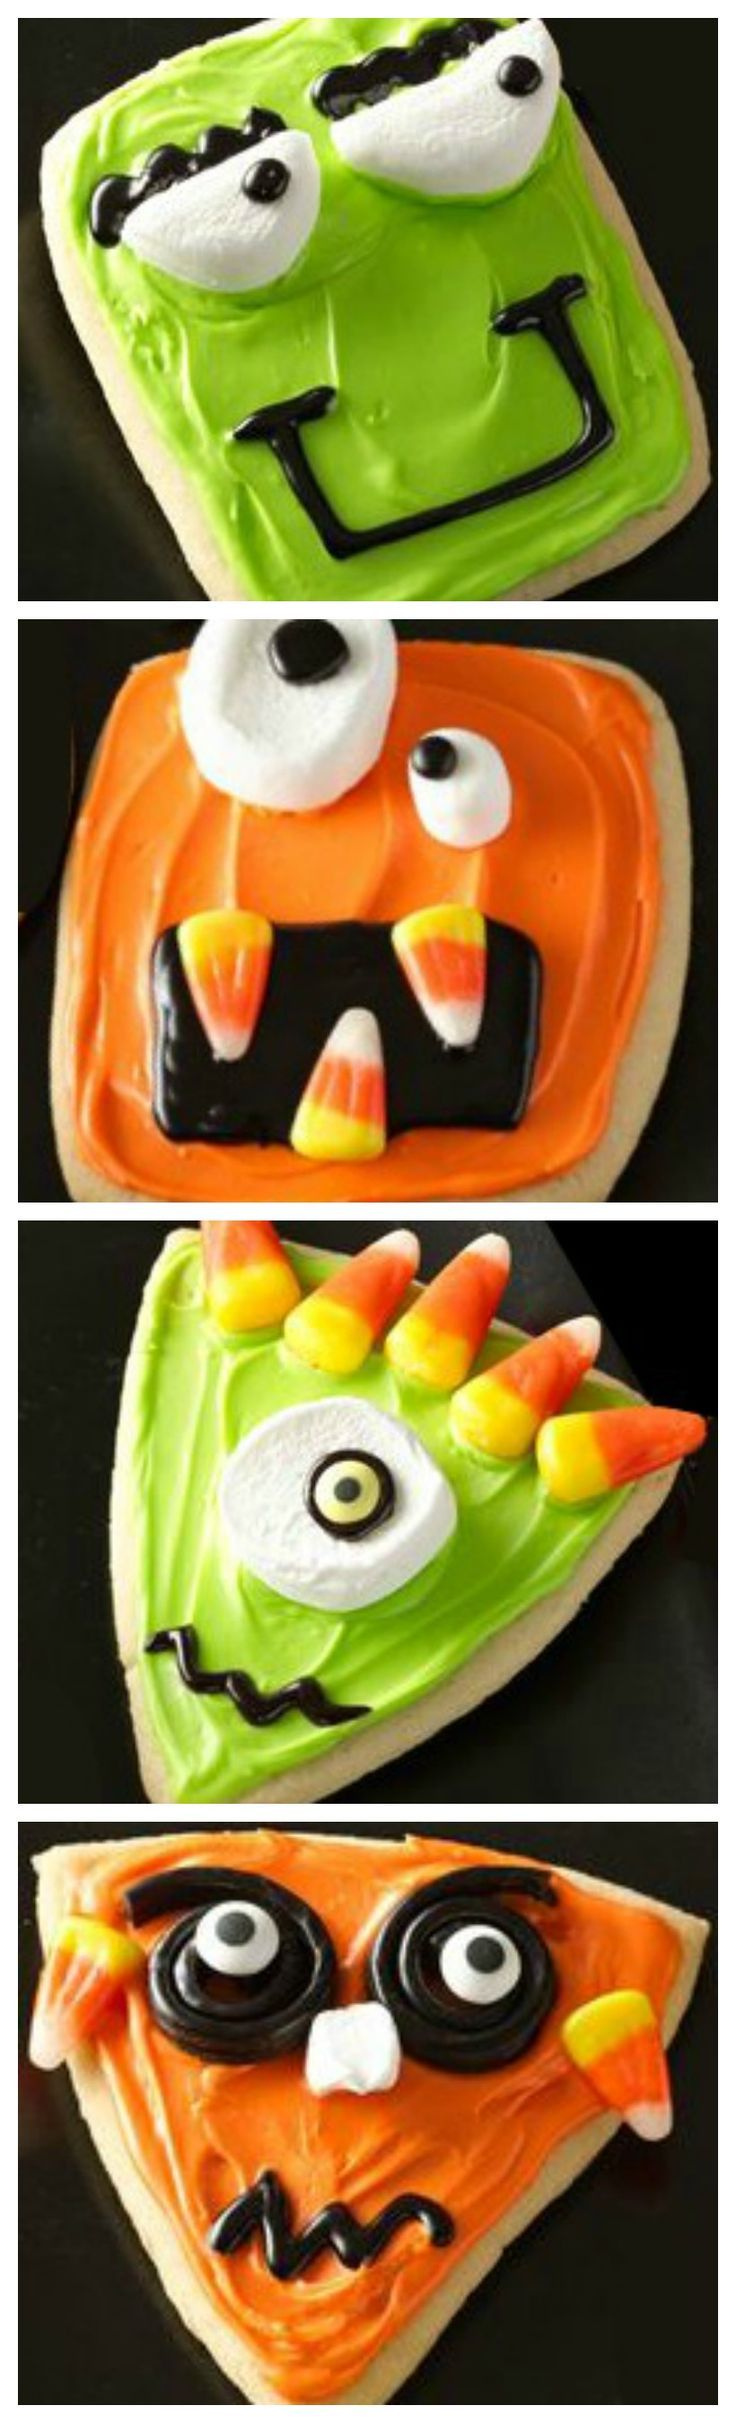 Wacky Monster Cookies ~ Fun and easy using Pillsbury™ refrigerated sugar cookies ... Bring these silly cookies to your next Halloween get-together!